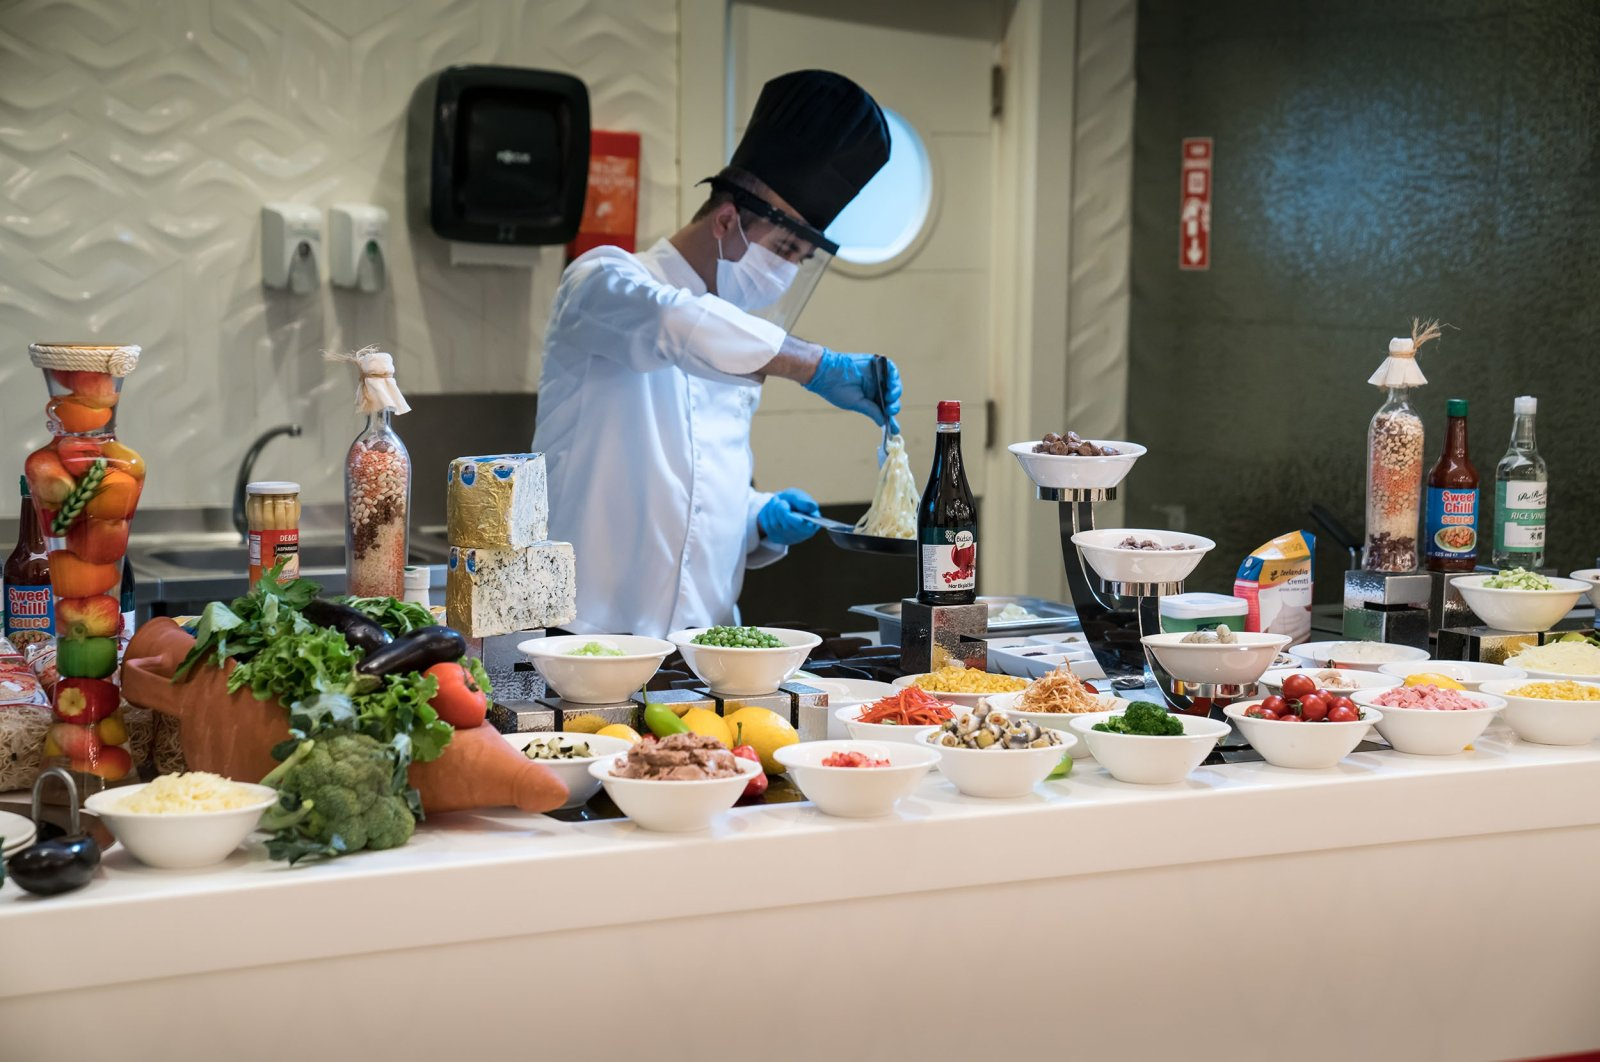 A chef wearing protective gear against the COVID-19 pandemic presents food in an open buffet food service in a restaurant in Antalya, southern Turkey, June 22, 2020. (Shutterstock Photo)